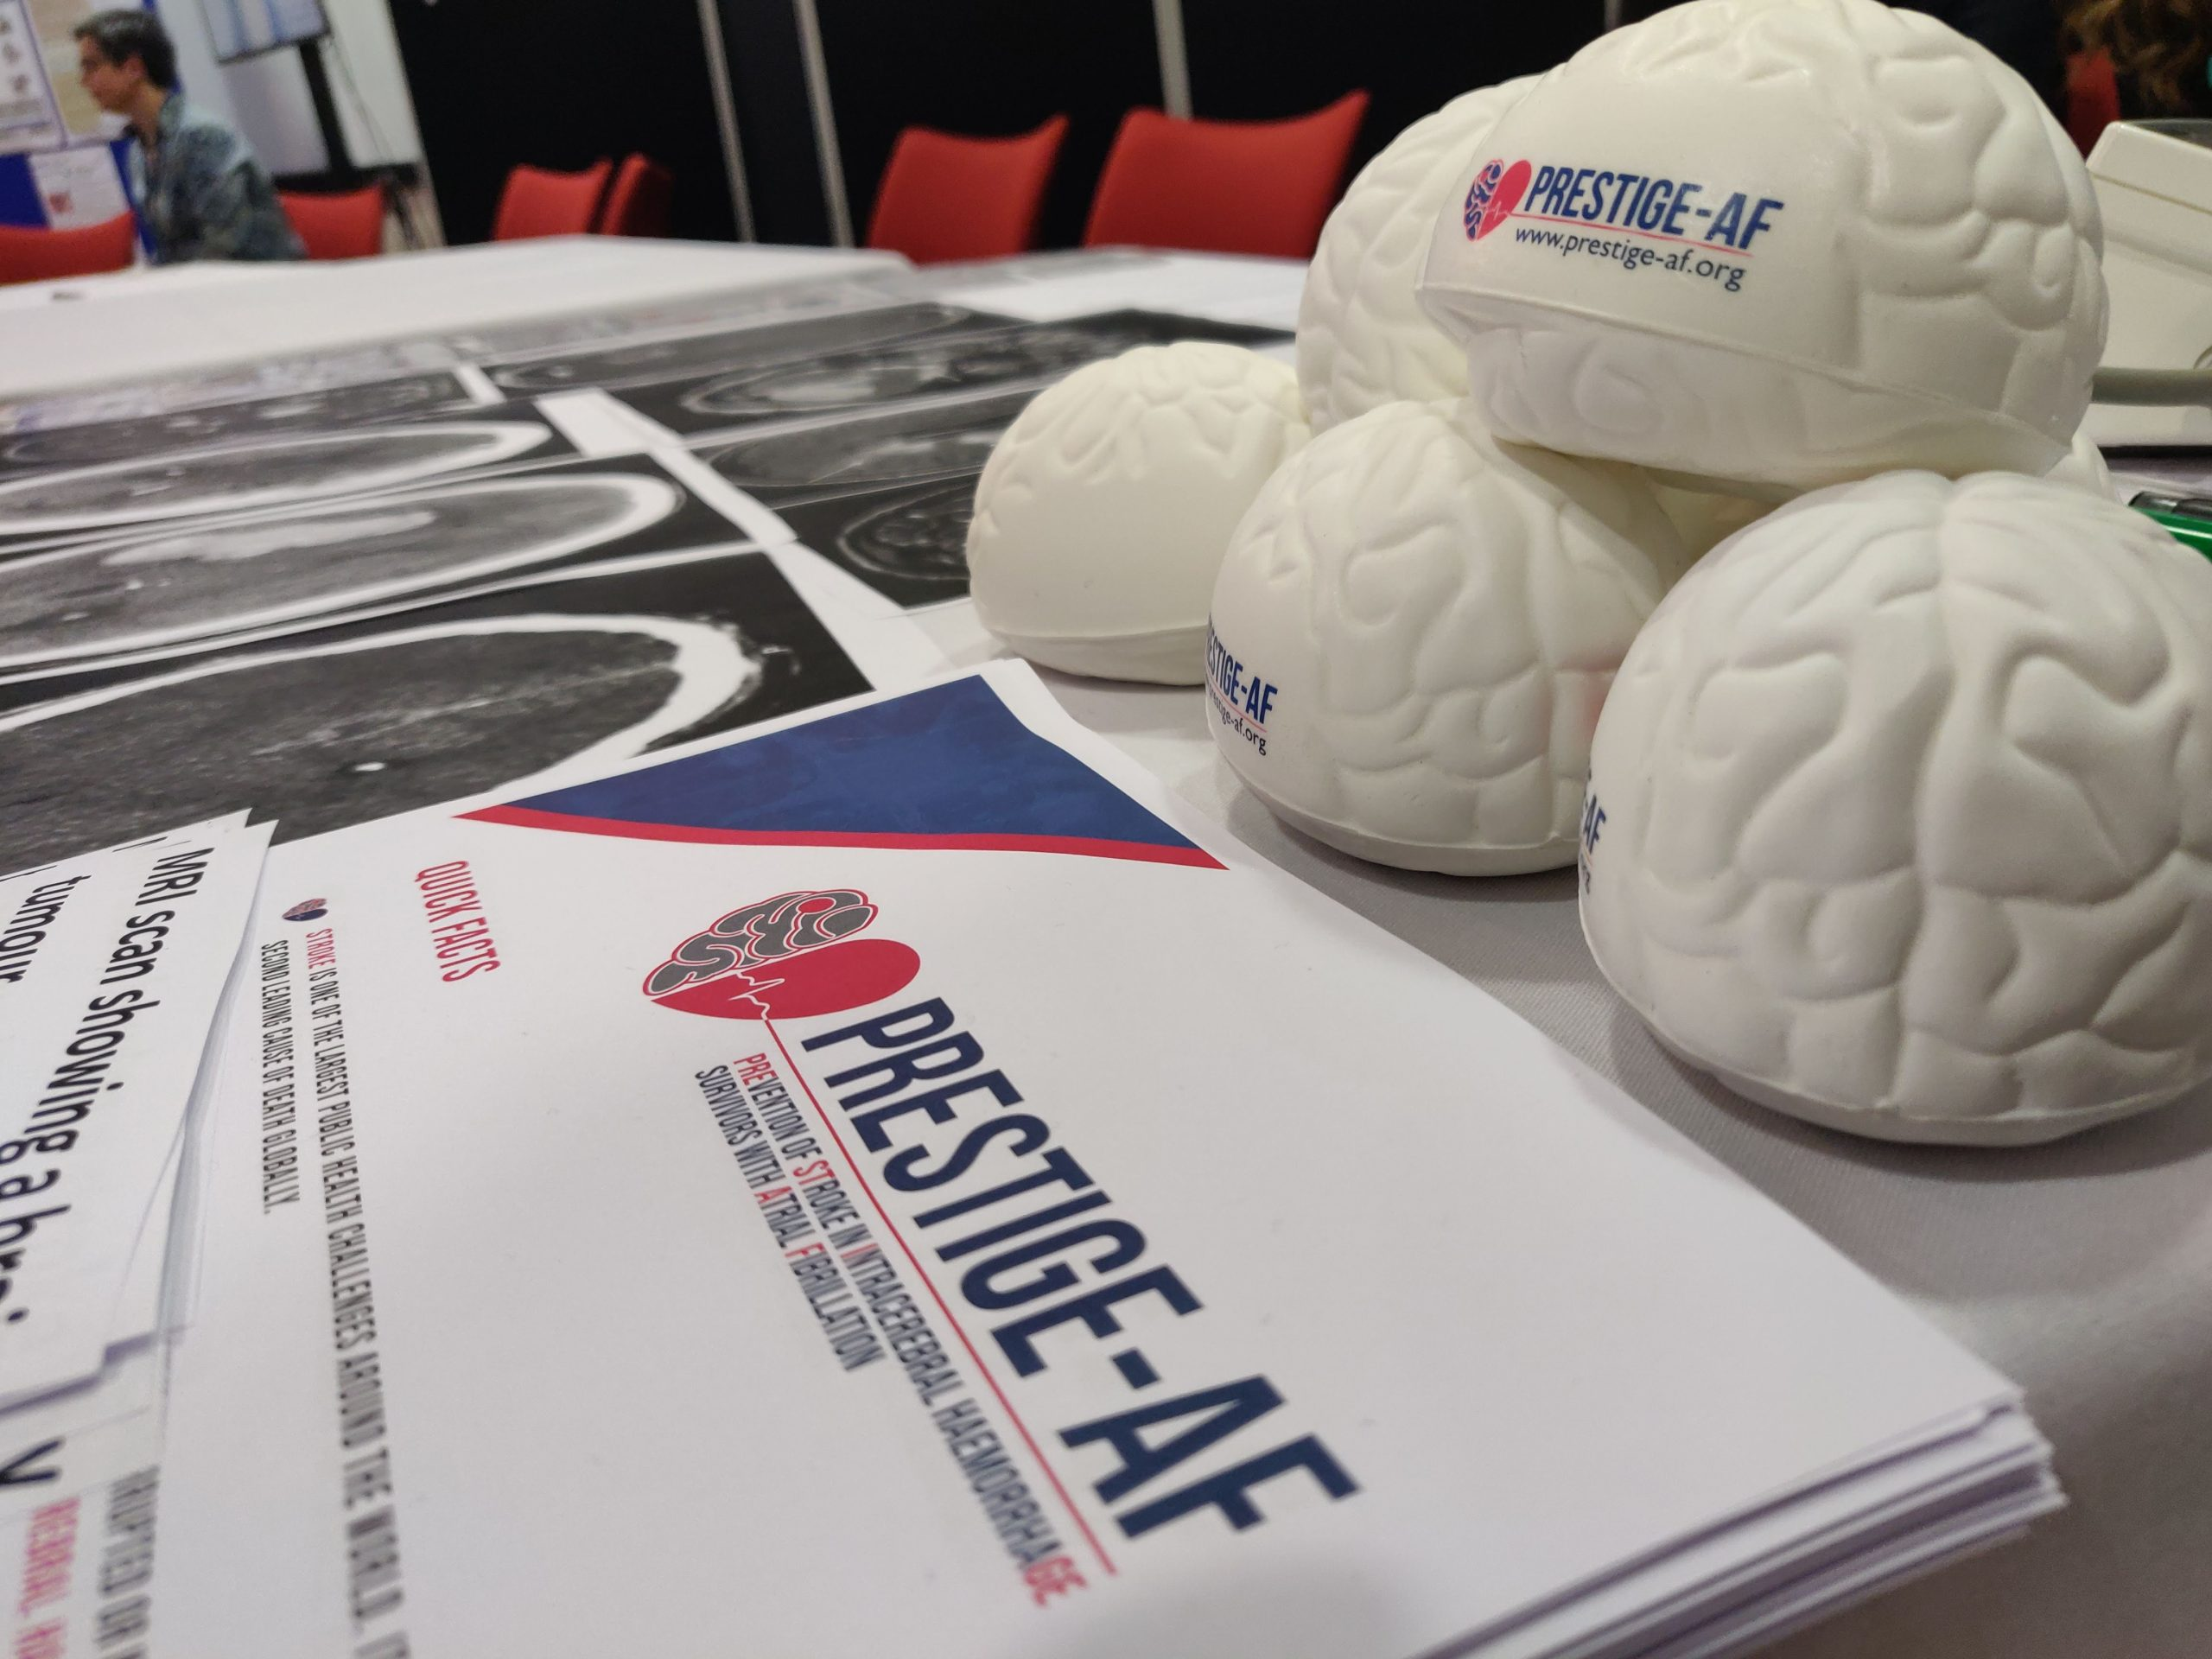 PRESTIGE-AF stress brains and information sheets on a table